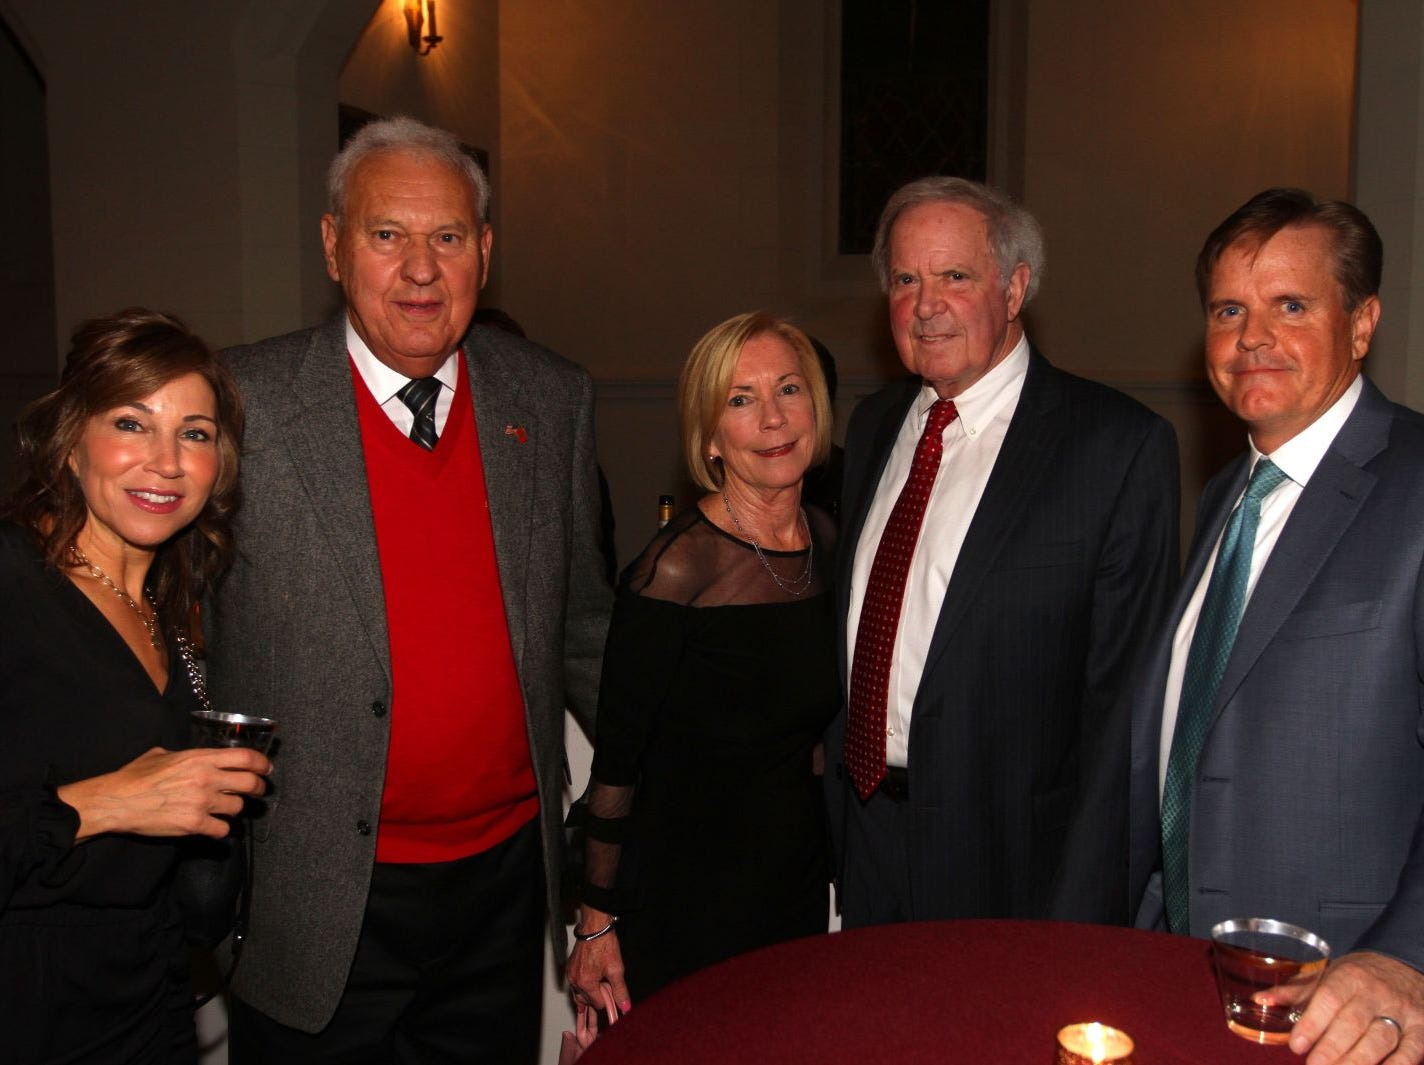 Michele O'Shea; Nick Ciampo; Jane Ciampo; Frank Crotty; Rob O'Shea. Wyckoff Family YMCA hosted its 75th anniversary gala to celebrate its benefactors, held at the Rio Vista seminary in Mahwah. 11/16/2018